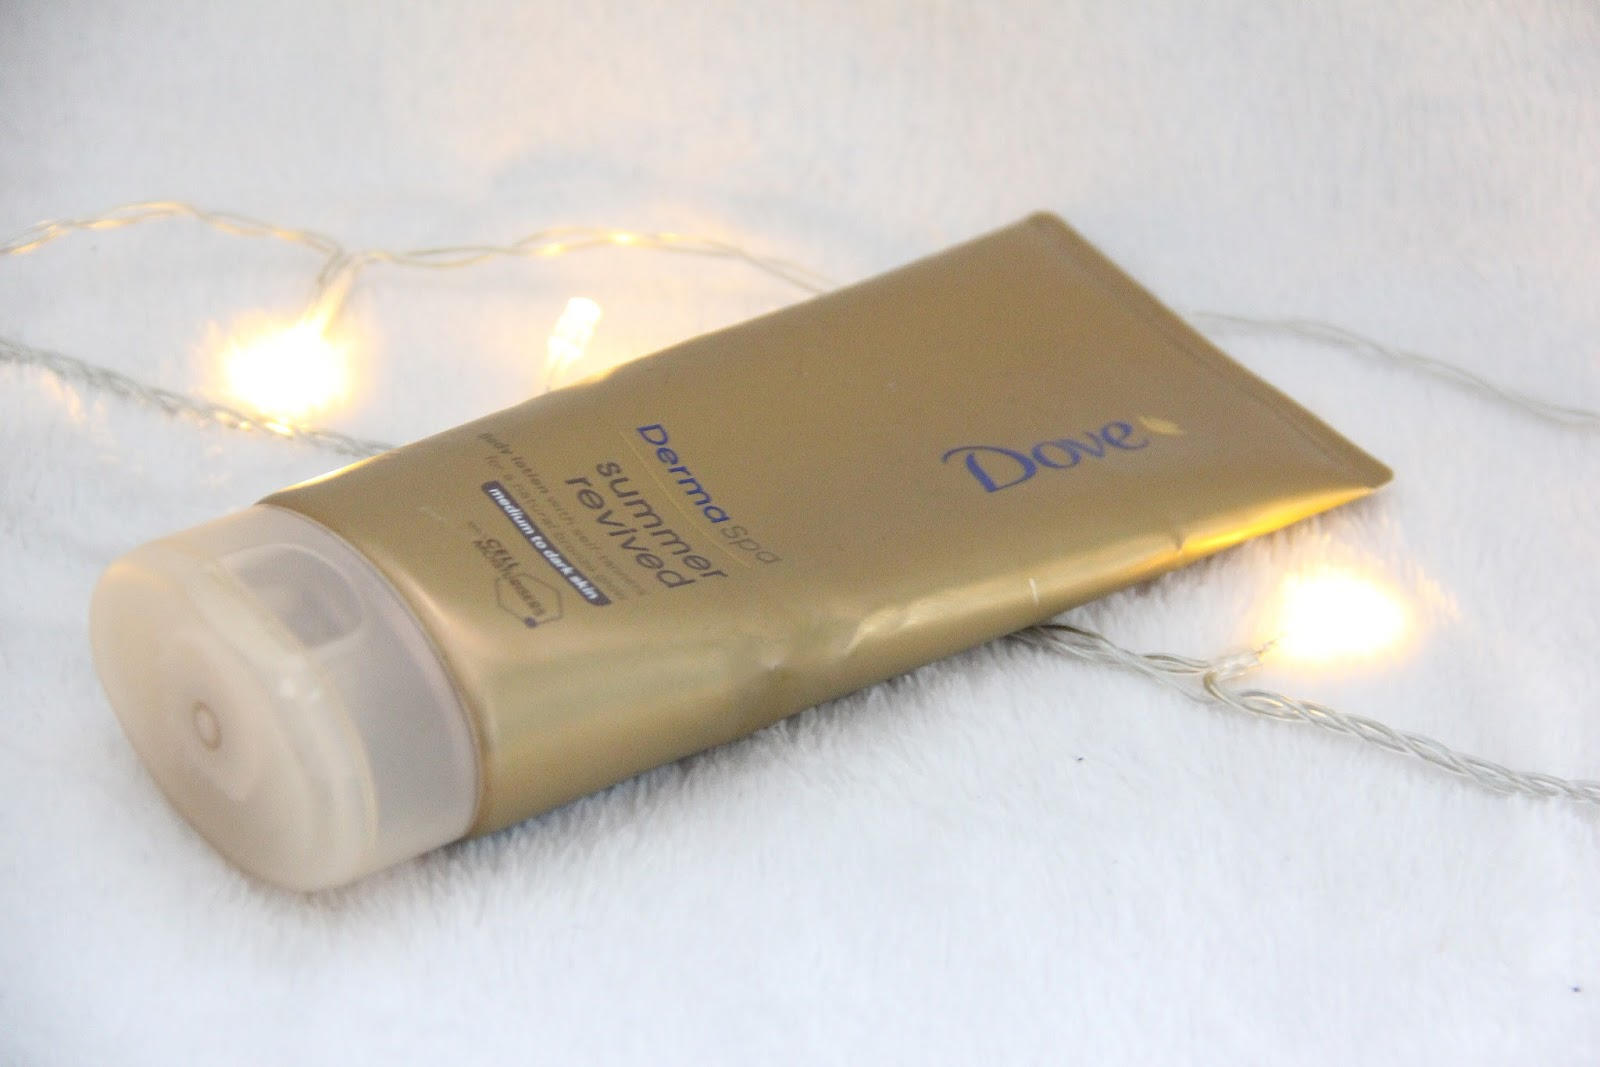 Dove 'Derma Spa Summer Revived' Gradual Tan.